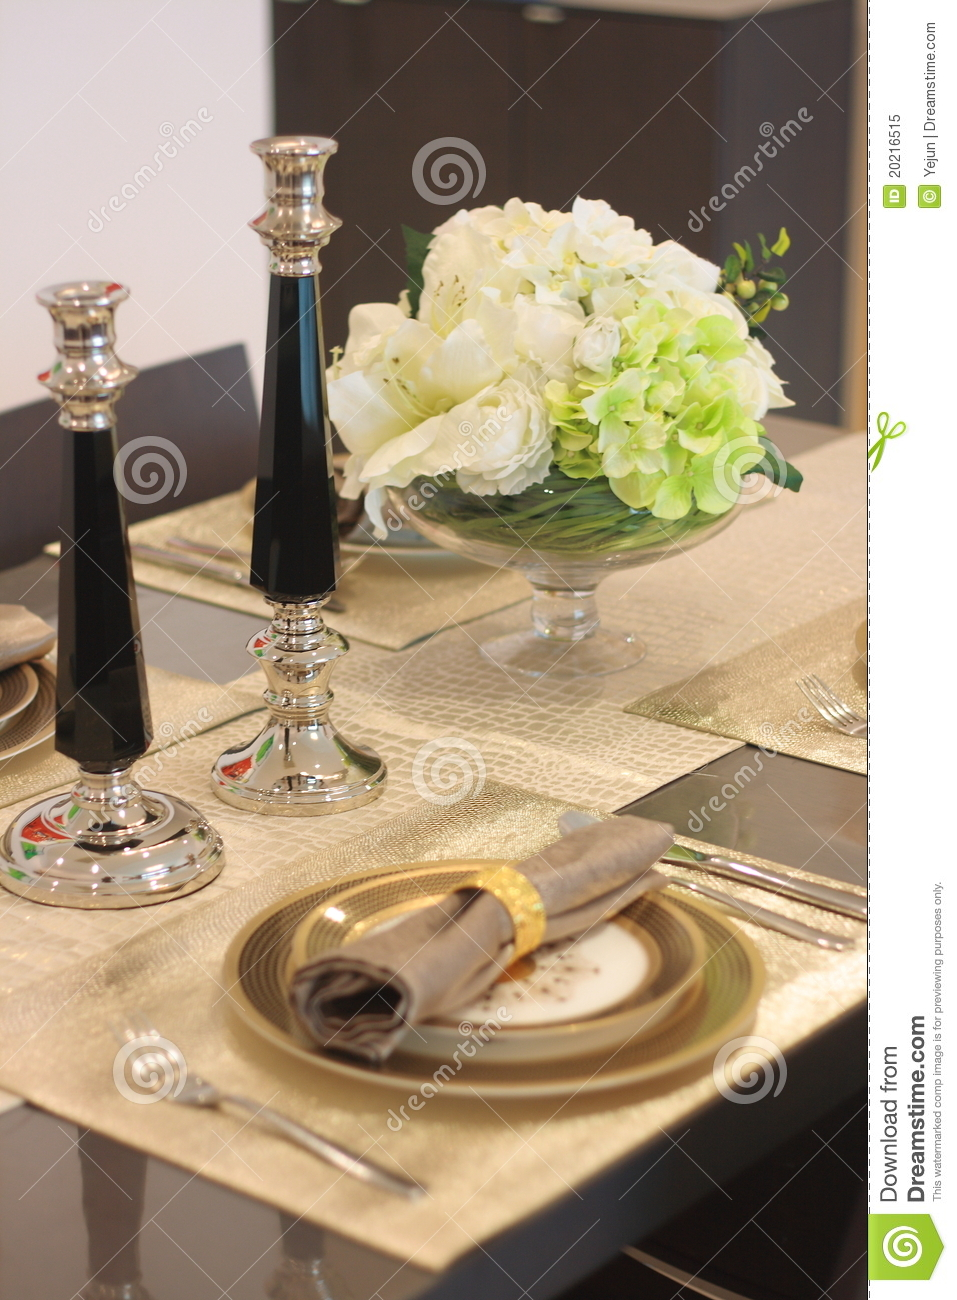 Dining Table Royalty Free Stock Photo  Image 20216515